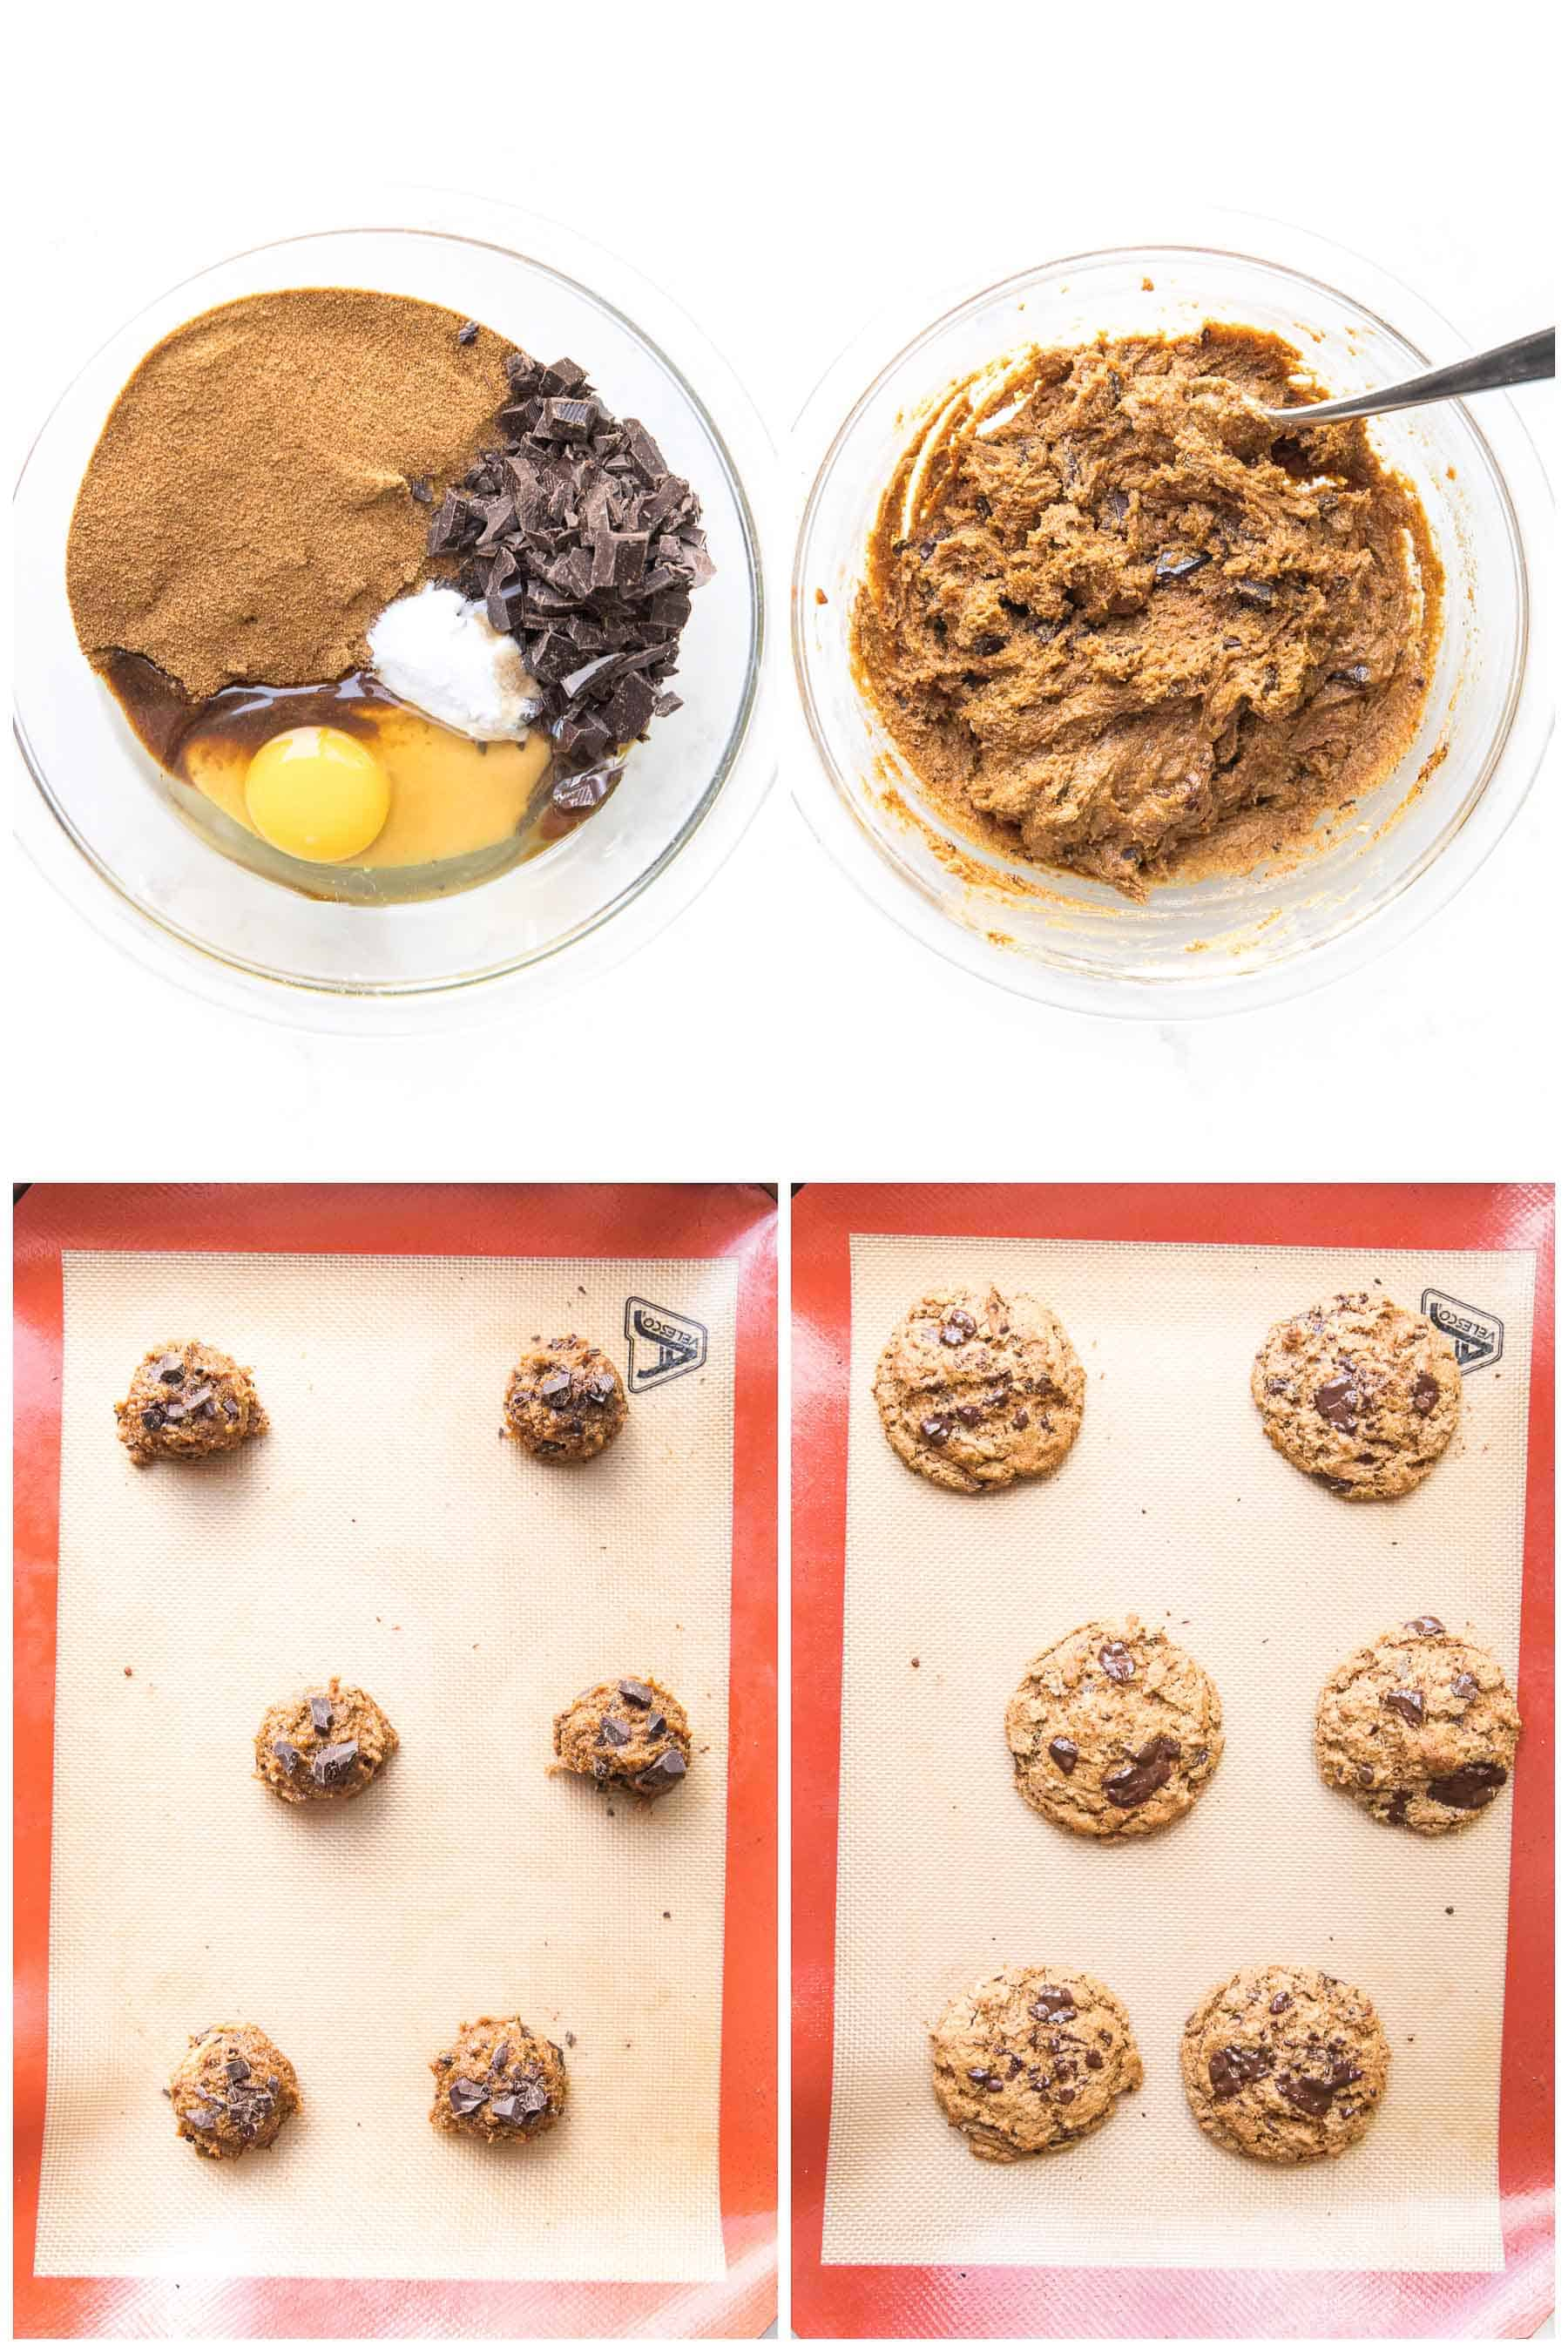 steps to making keto cashew butter chocolate chip cookies